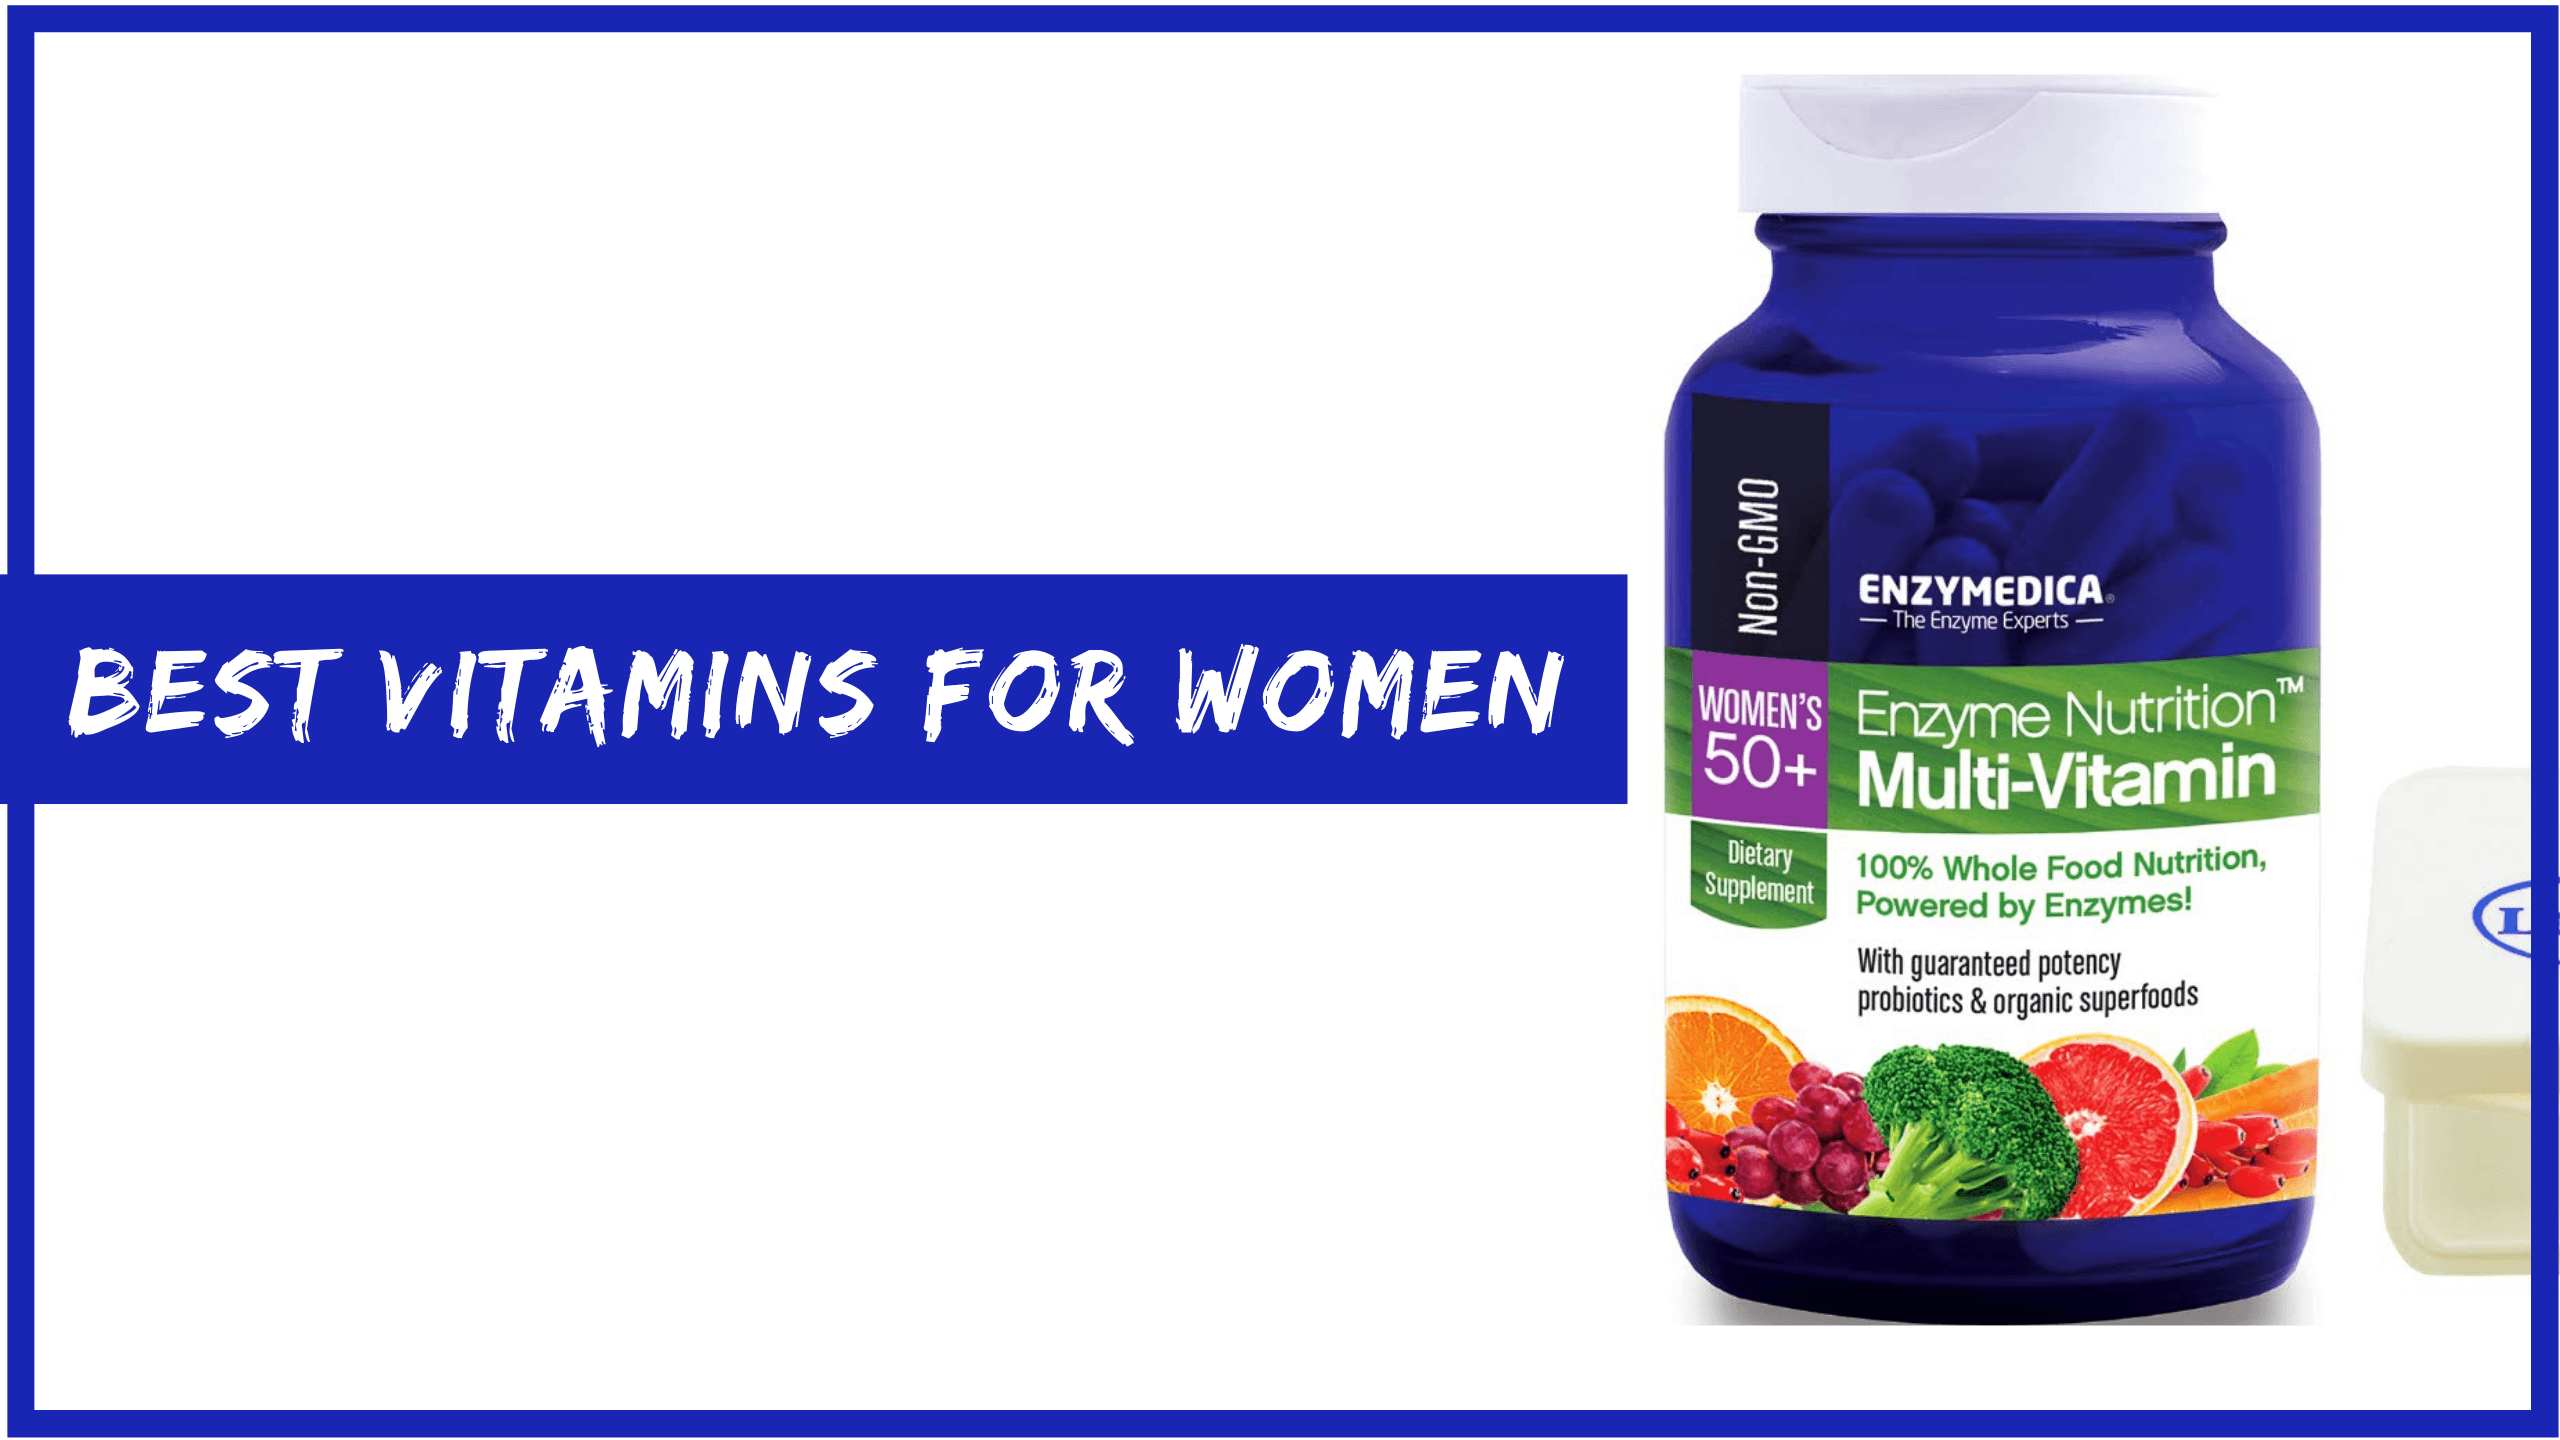 Best multivitamins for women